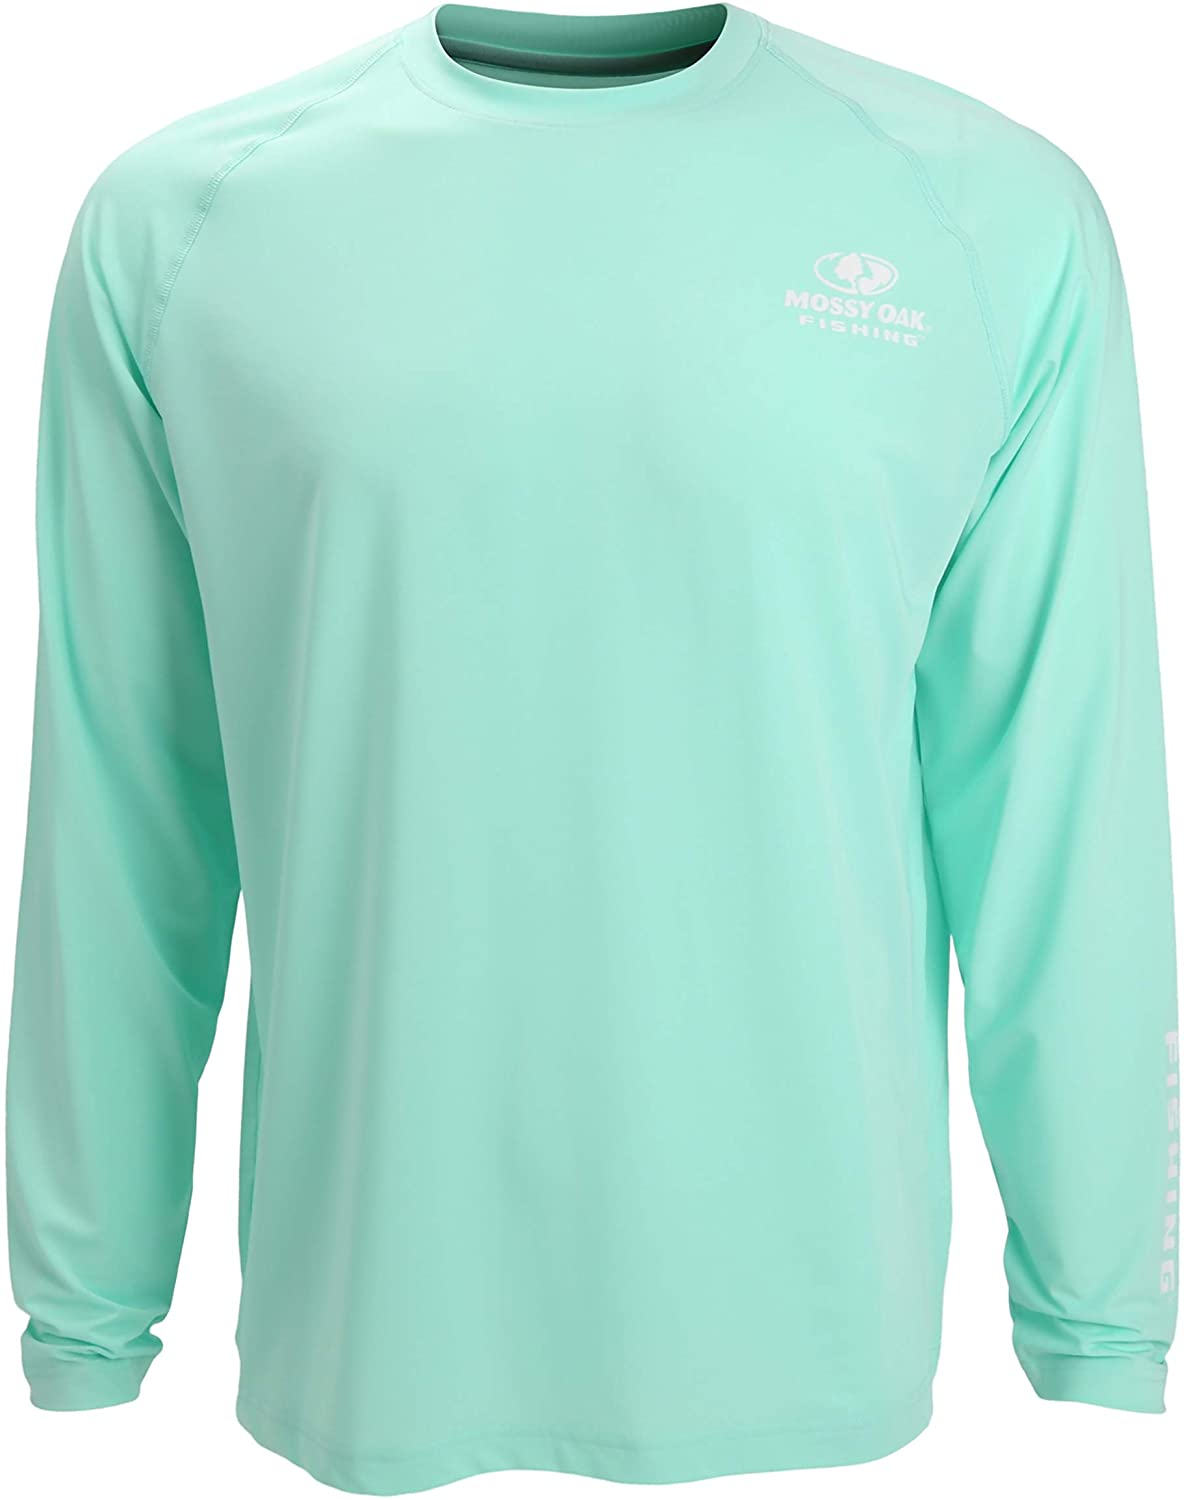 EAG Cash special price Elite Mossy Oak Long Performance Shirt Ranking TOP15 Fishing Sleeve Solid